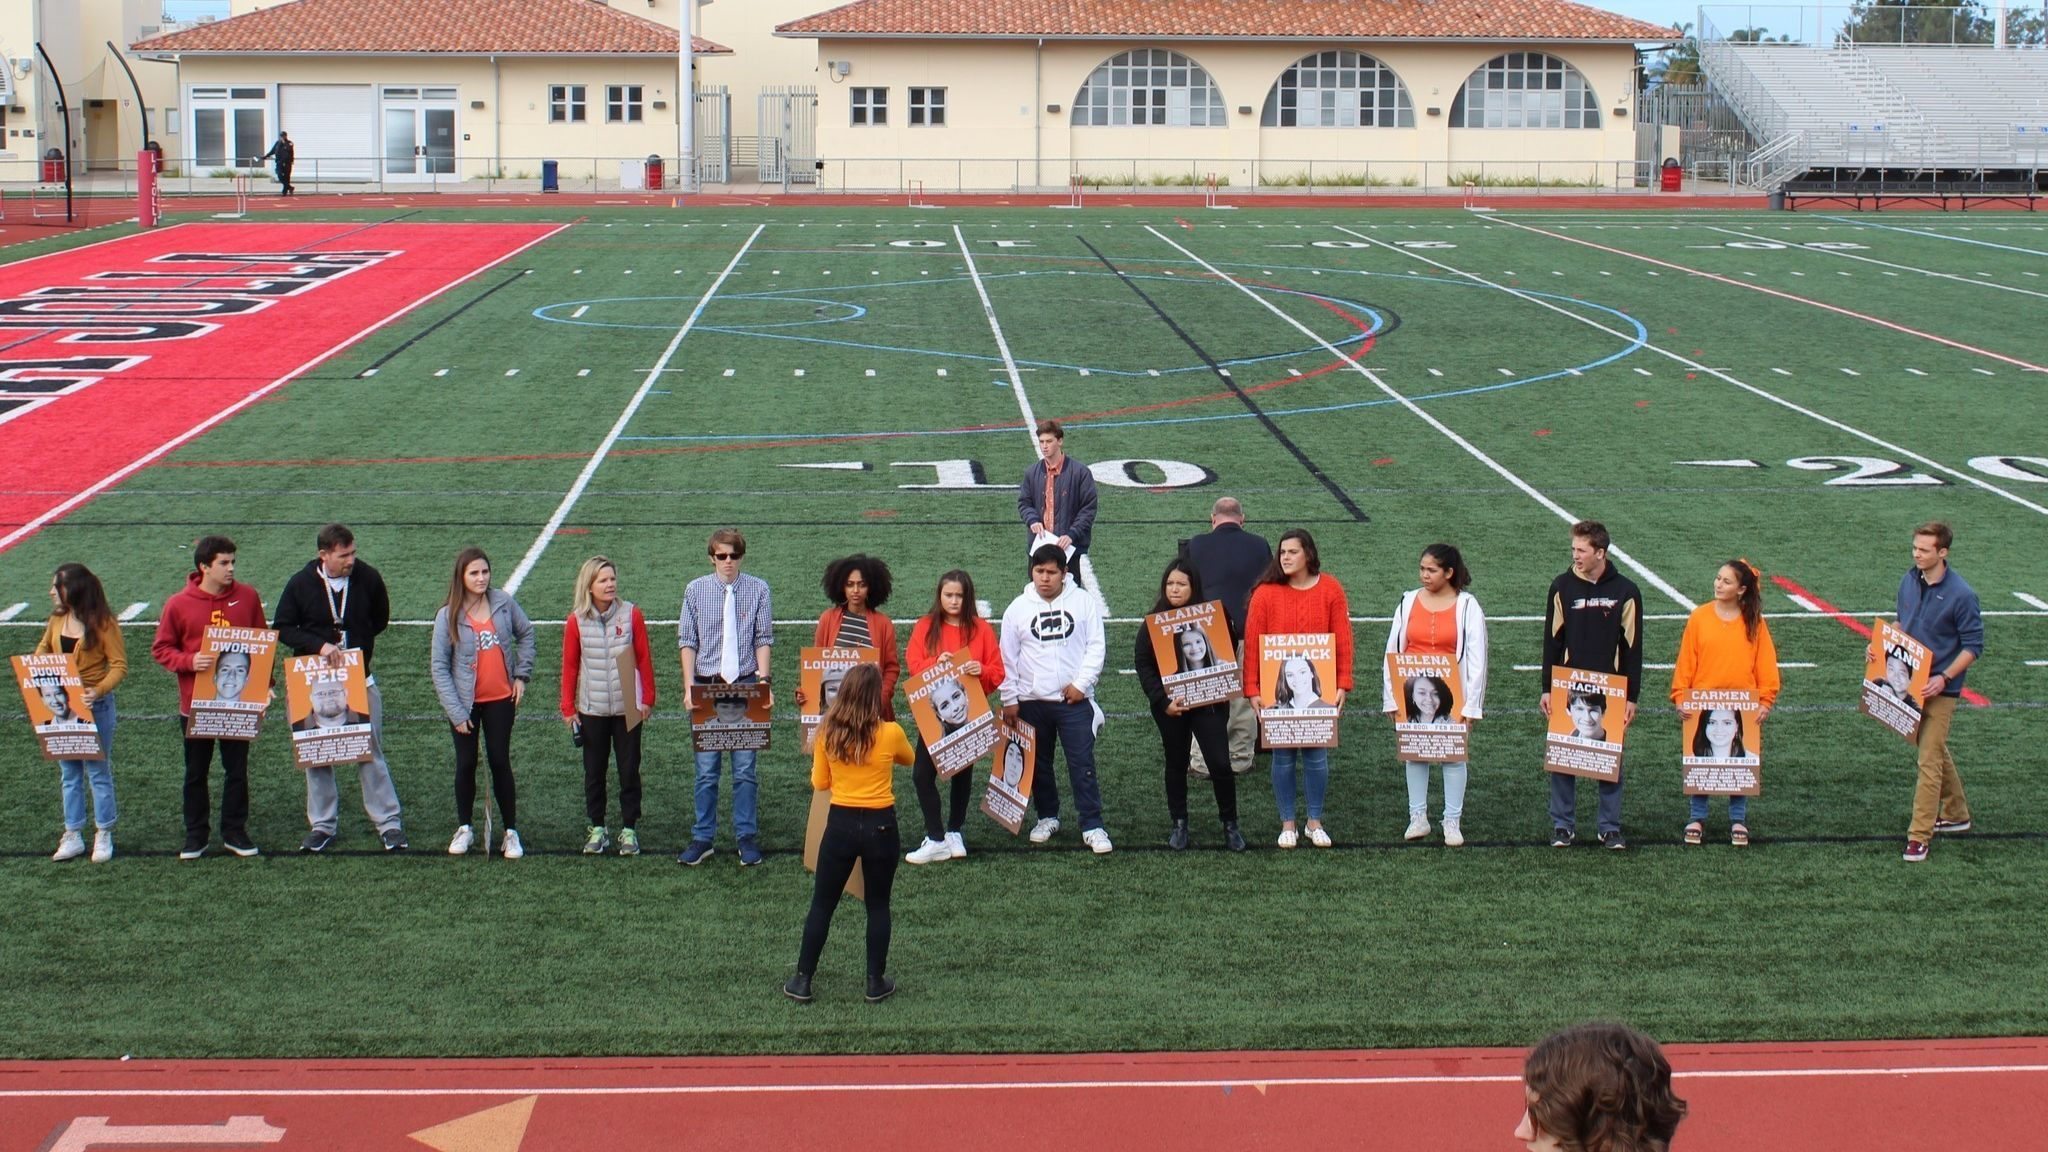 LJHS students hold up signs commemorating the Marjory Stoneman Douglas High School victims.